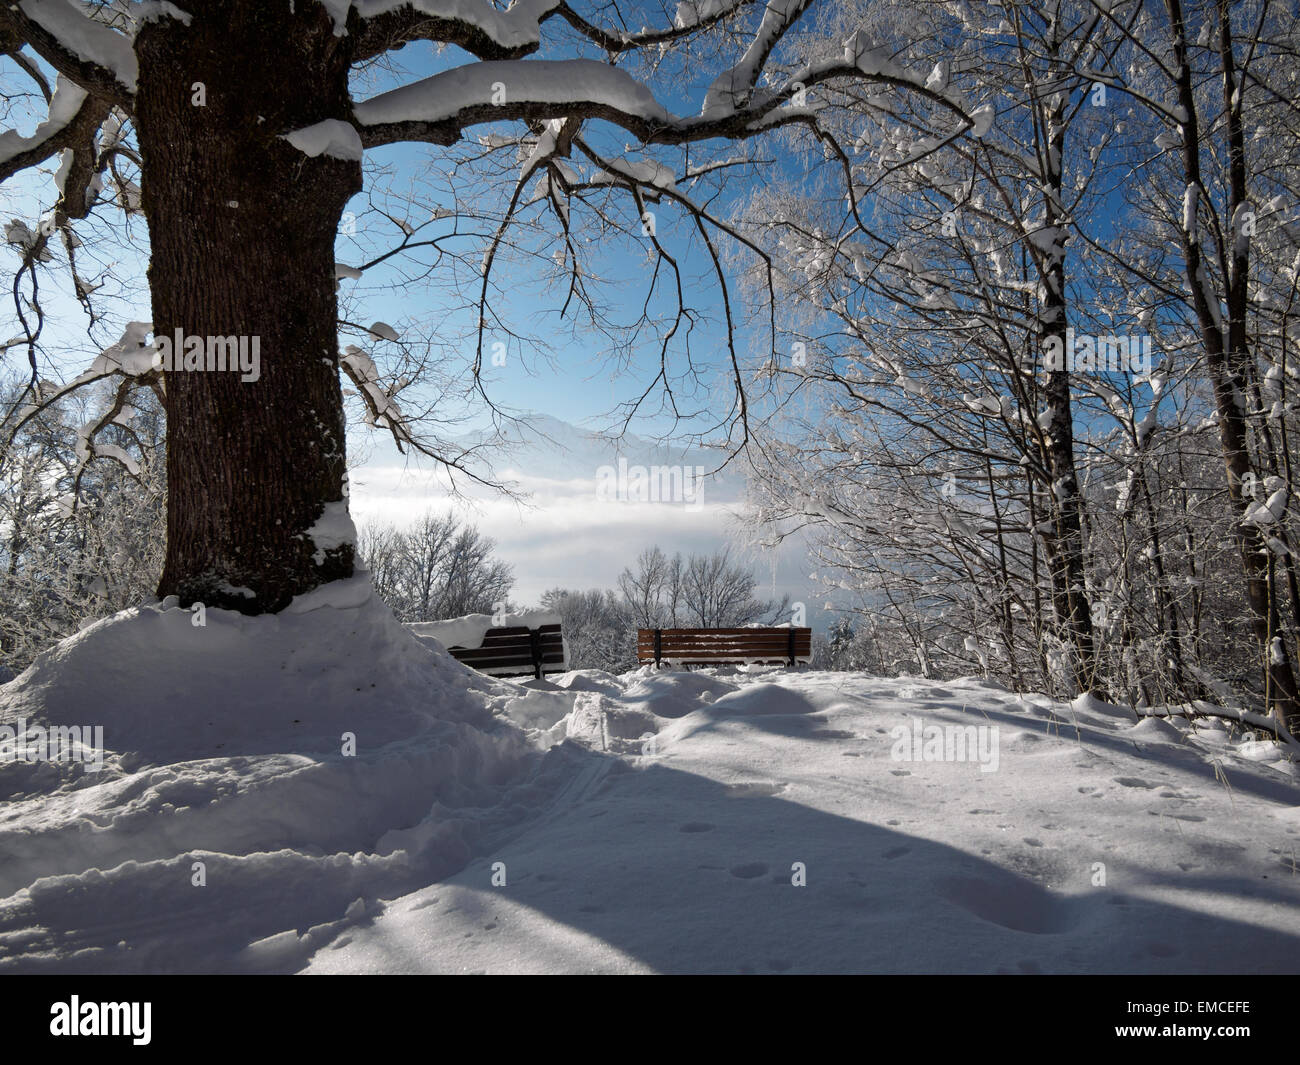 Germany, Kochel am See, snow-covered observation point - Stock Image